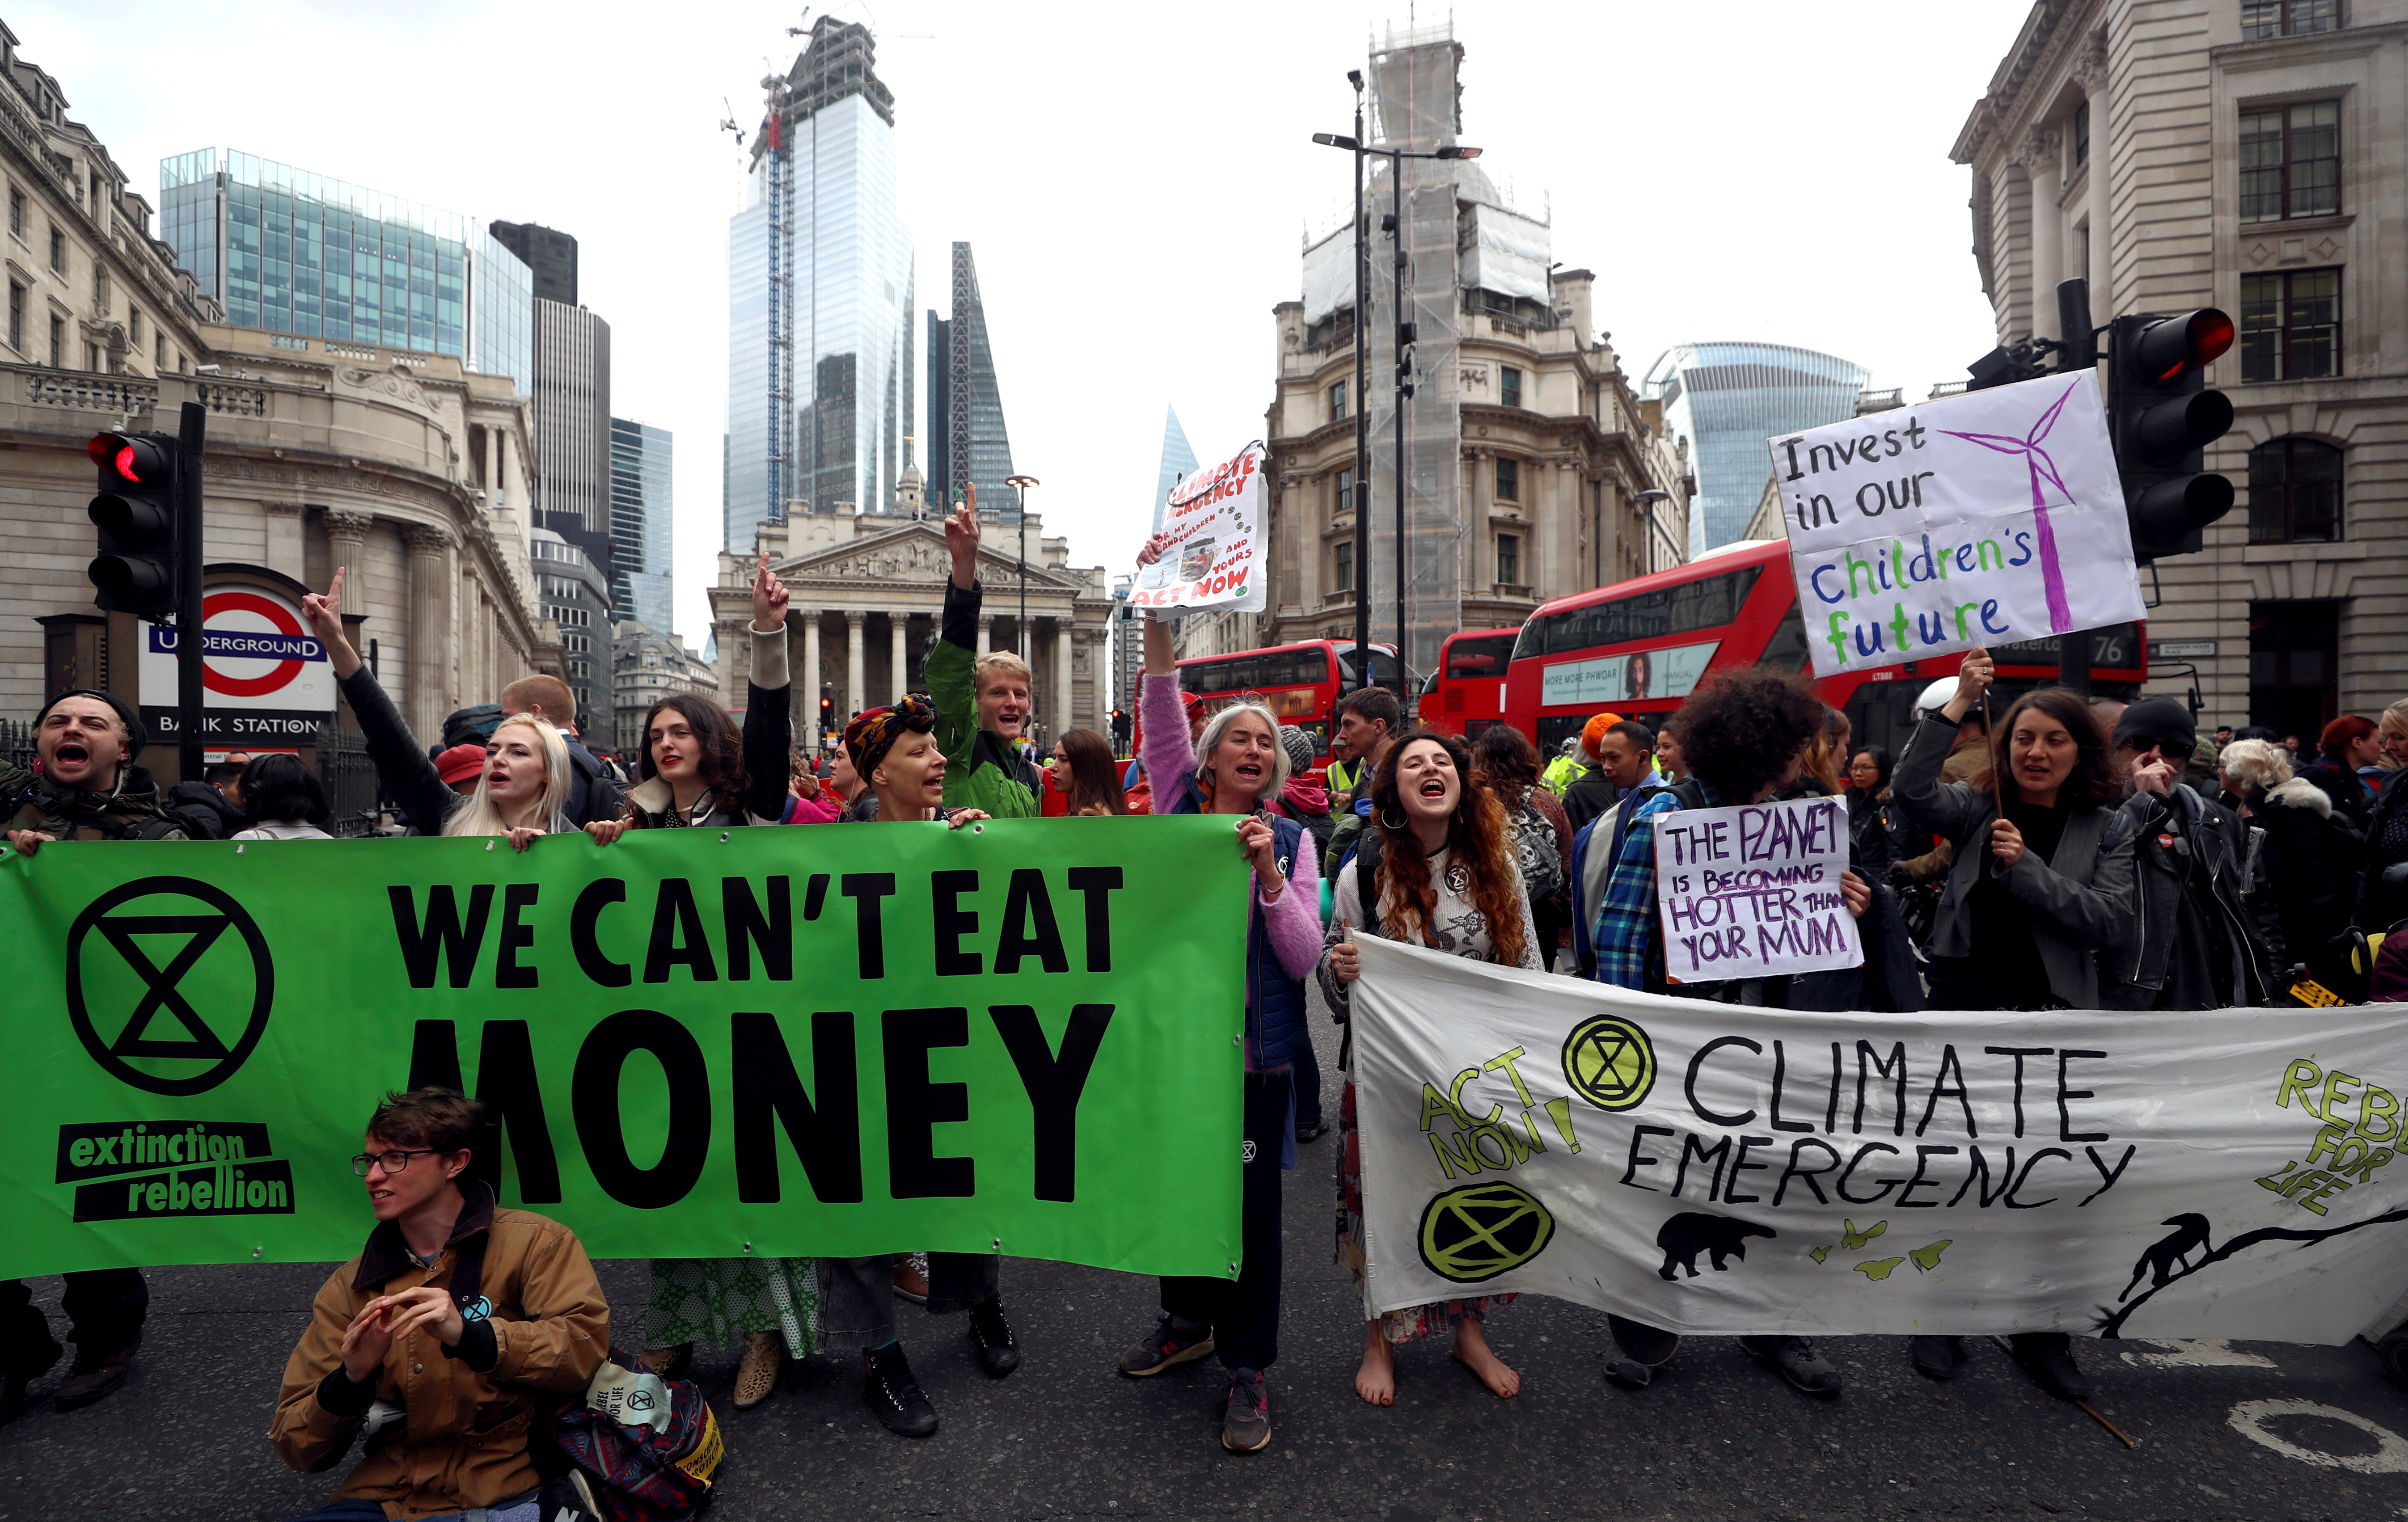 Protesters block traffic at Bank Junction during the Extinction Rebellion protest in London, Britain April 25, 2019. REUTERS/Simon Dawson